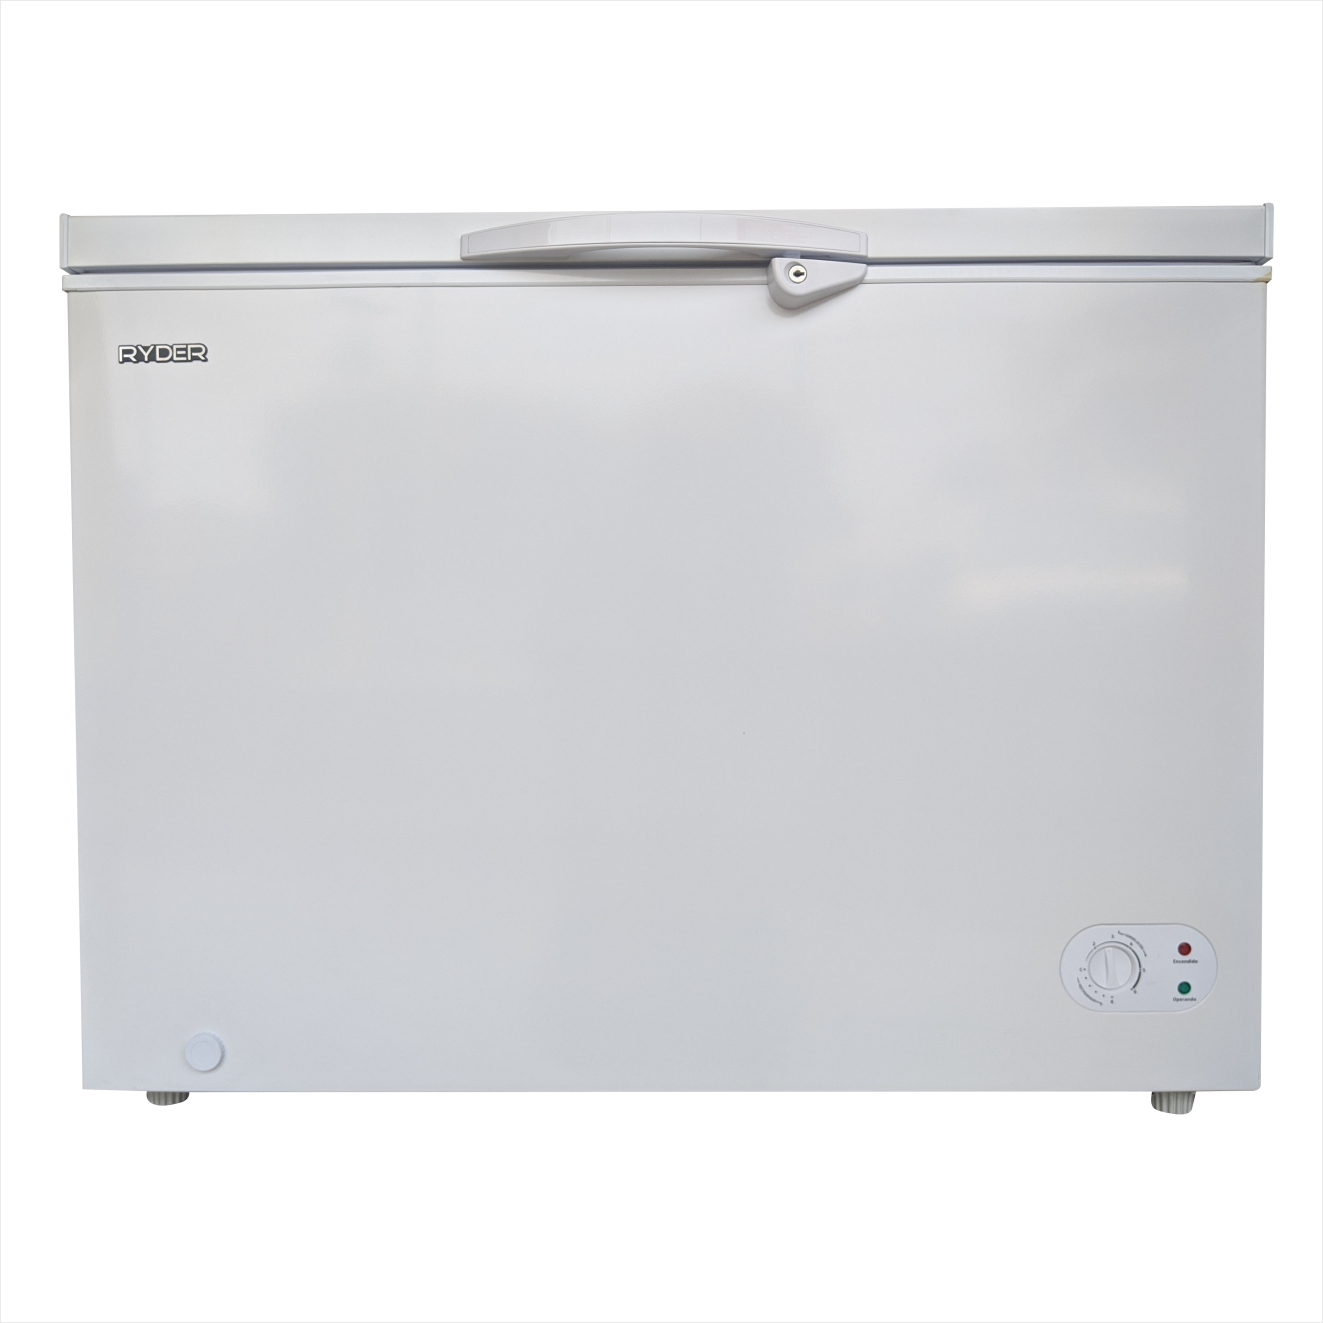 FREEZER RYDER 8FT HCF-210-E